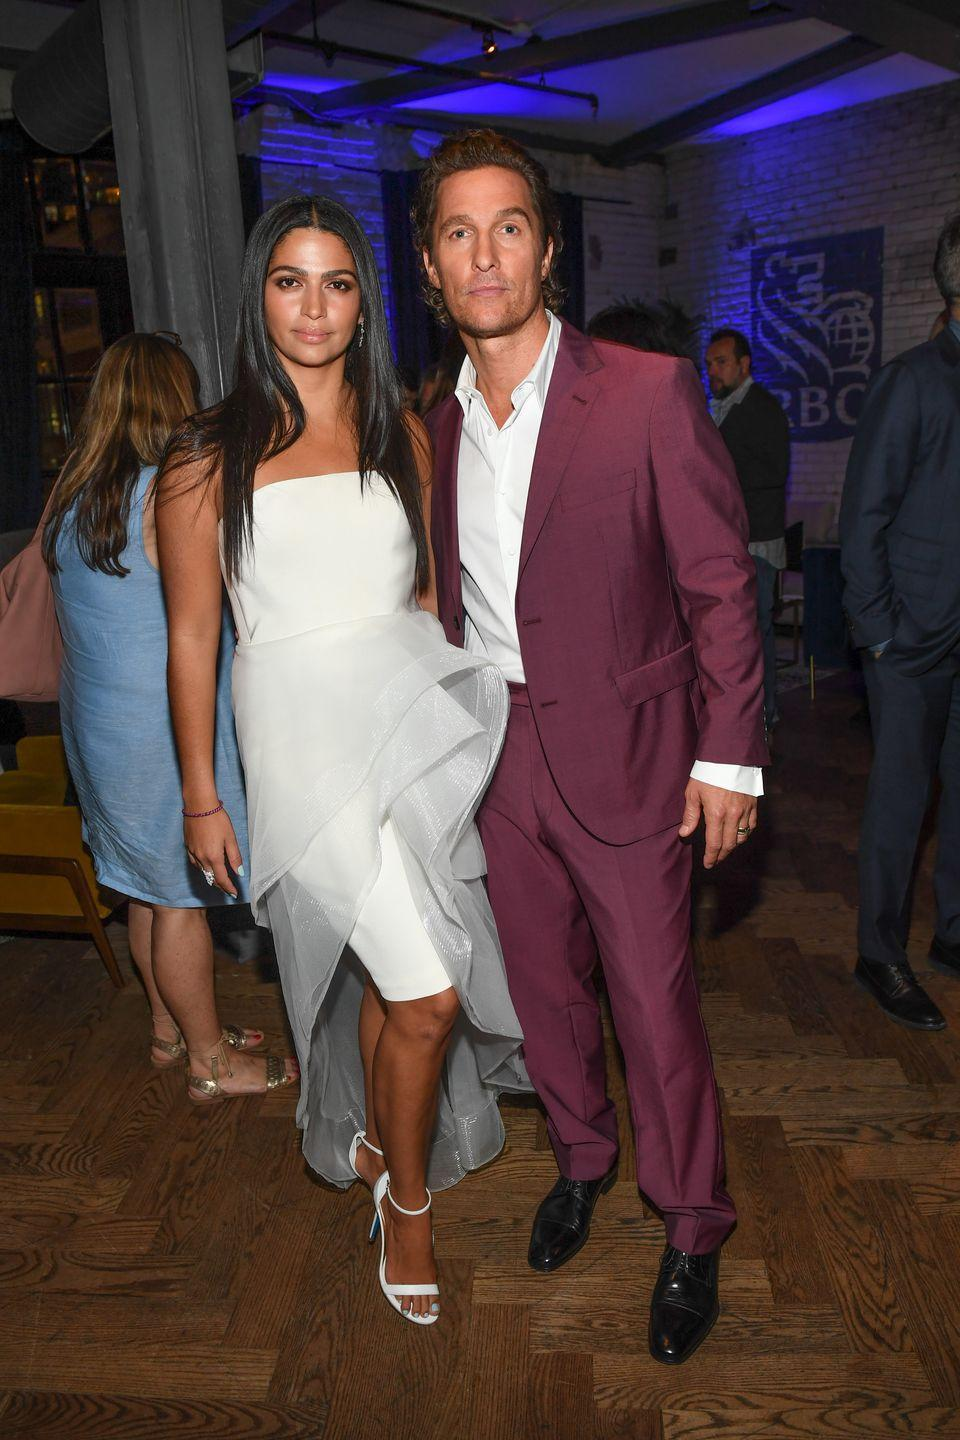 "<p>Matthew McConaughey met model Camila Alves at a Los Angeles nightclub in 2006, when McConaughey was 36 and Alves was 23. While it <a href=""https://www.usmagazine.com/celebrity-news/news/matthew-mcconaughey-my-wife-camila-alves-once-rejected-me-w461418/"" rel=""nofollow noopener"" target=""_blank"" data-ylk=""slk:took some convincing"" class=""link rapid-noclick-resp"">took some convincing</a> to win her over, the two finally started dating and he proposed on Christmas Day in 2011. The couple then married in June 2012. They share three kids together: sons Levi and Livingston and daughter Vida.</p>"